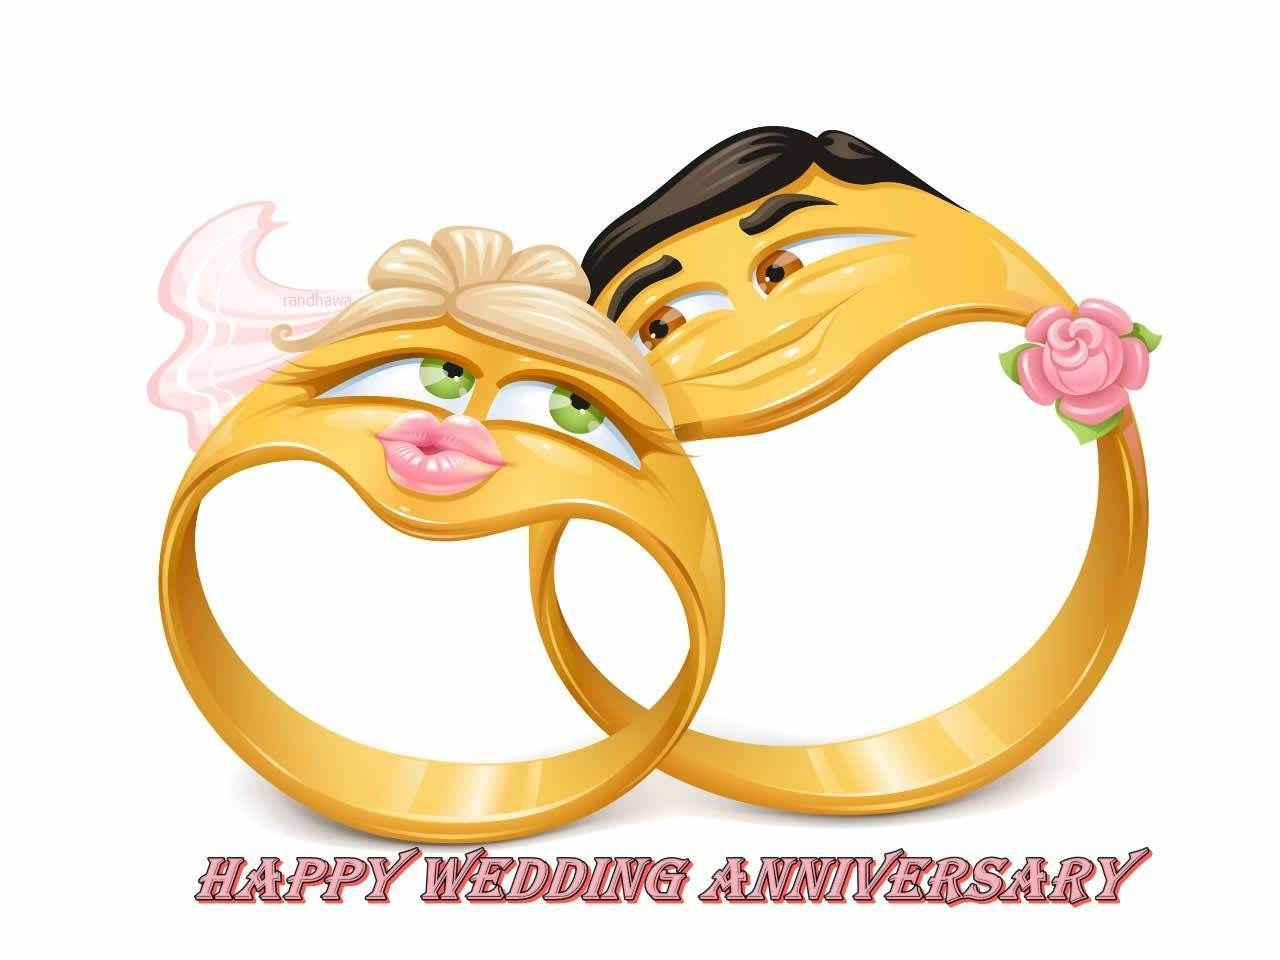 15 delightful happy anniversary pictures wedding anniversary rings Happy Wedding Anniversary Rings Picture